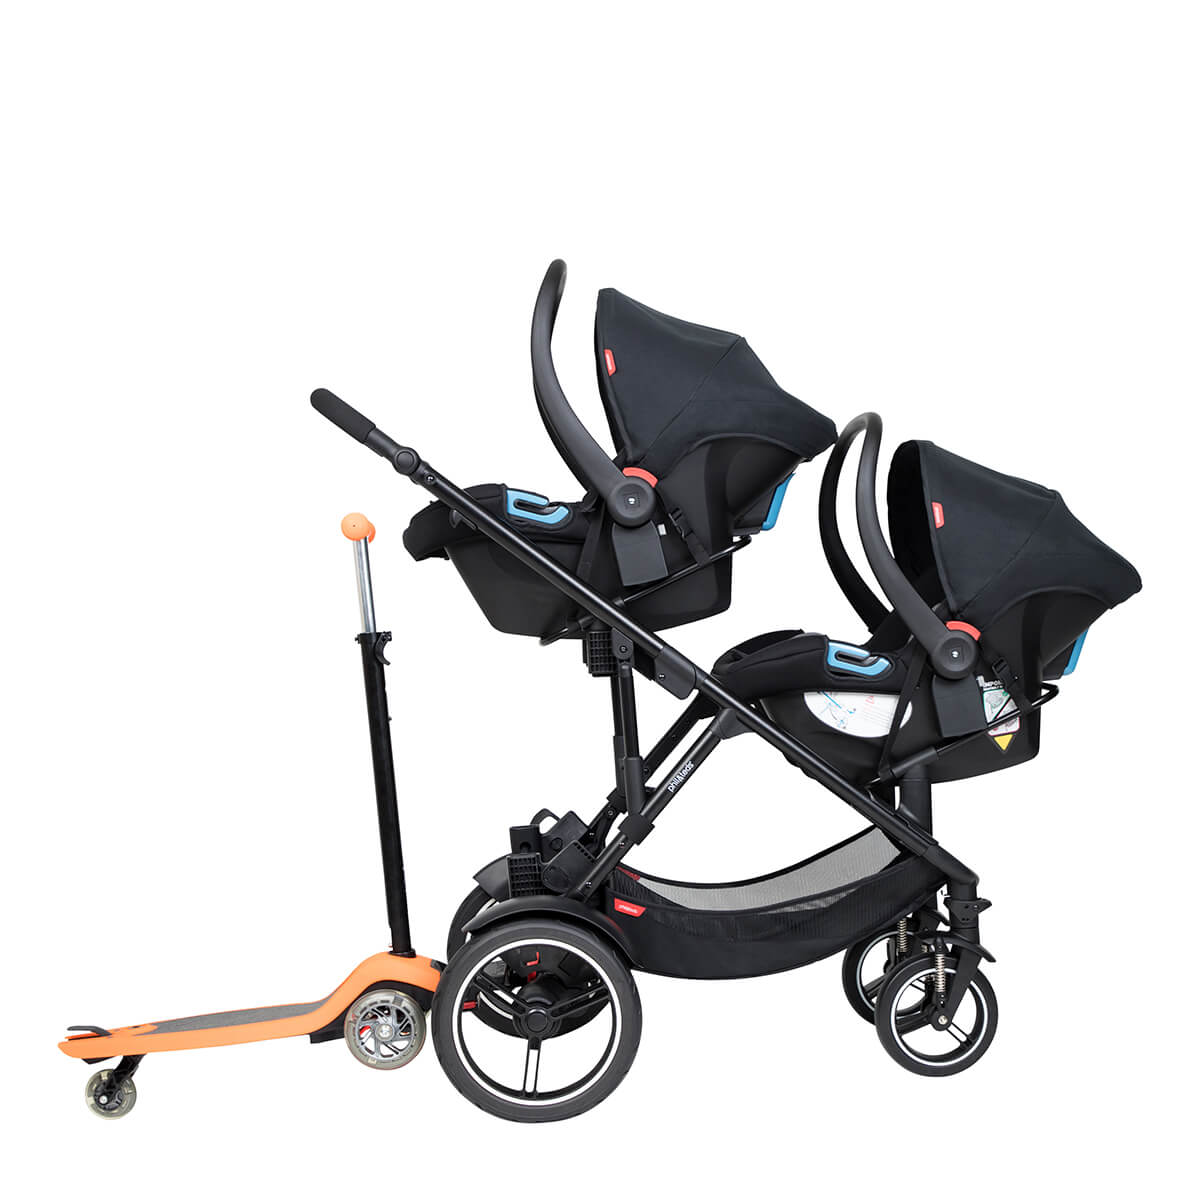 https://cdn.accentuate.io/4509912236109/19466498146498/philteds-voyager-buggy-with-double-travel-systems-and-freerider-stroller-board-in-the-rear-v1626485538671.jpg?1200x1200